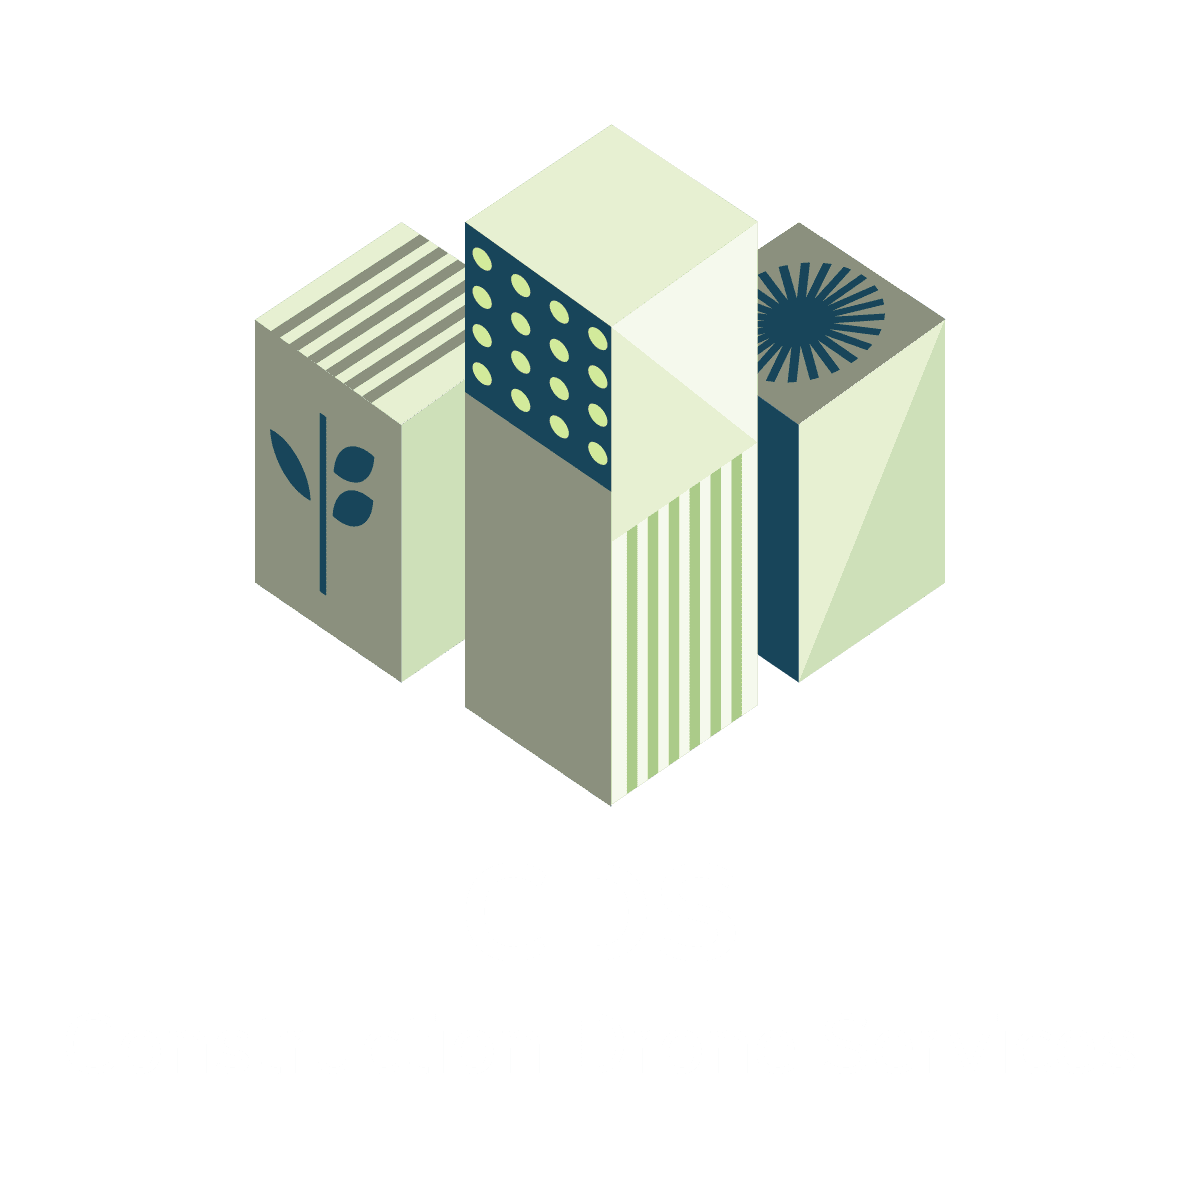 Construction Drone Services Ltd